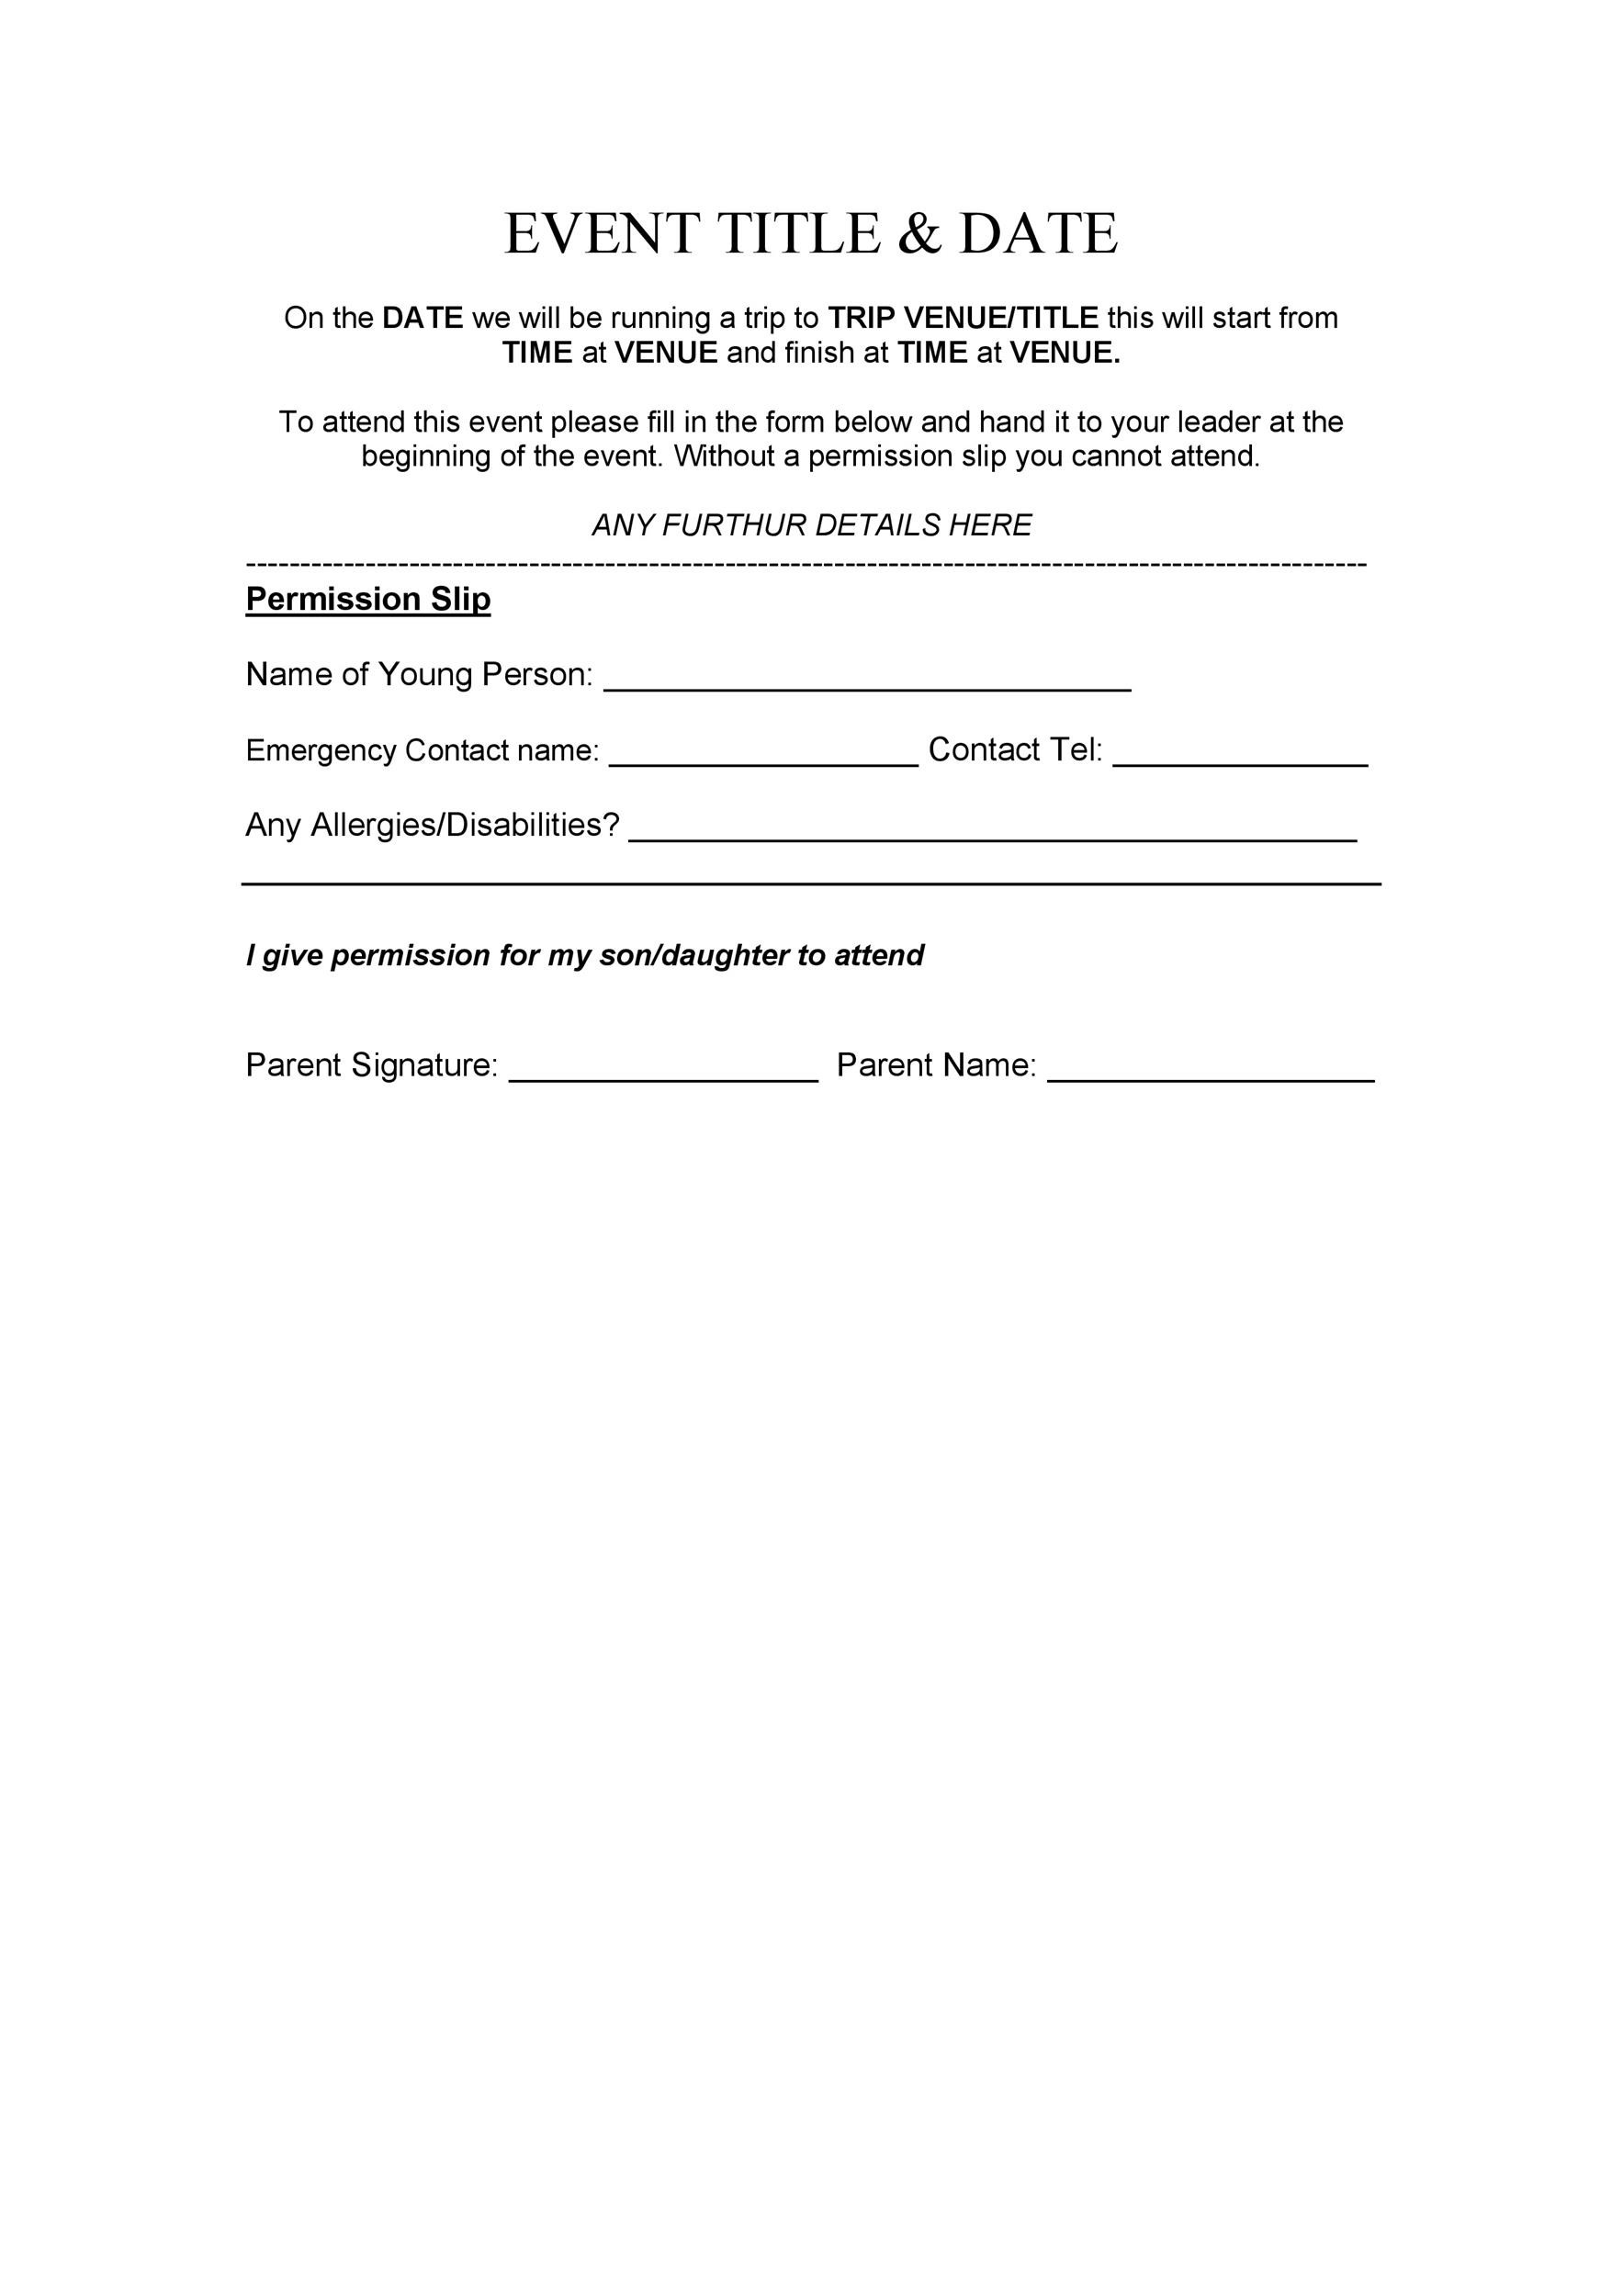 35 permission slip templates field trip forms printable permission slip 10 altavistaventures Images